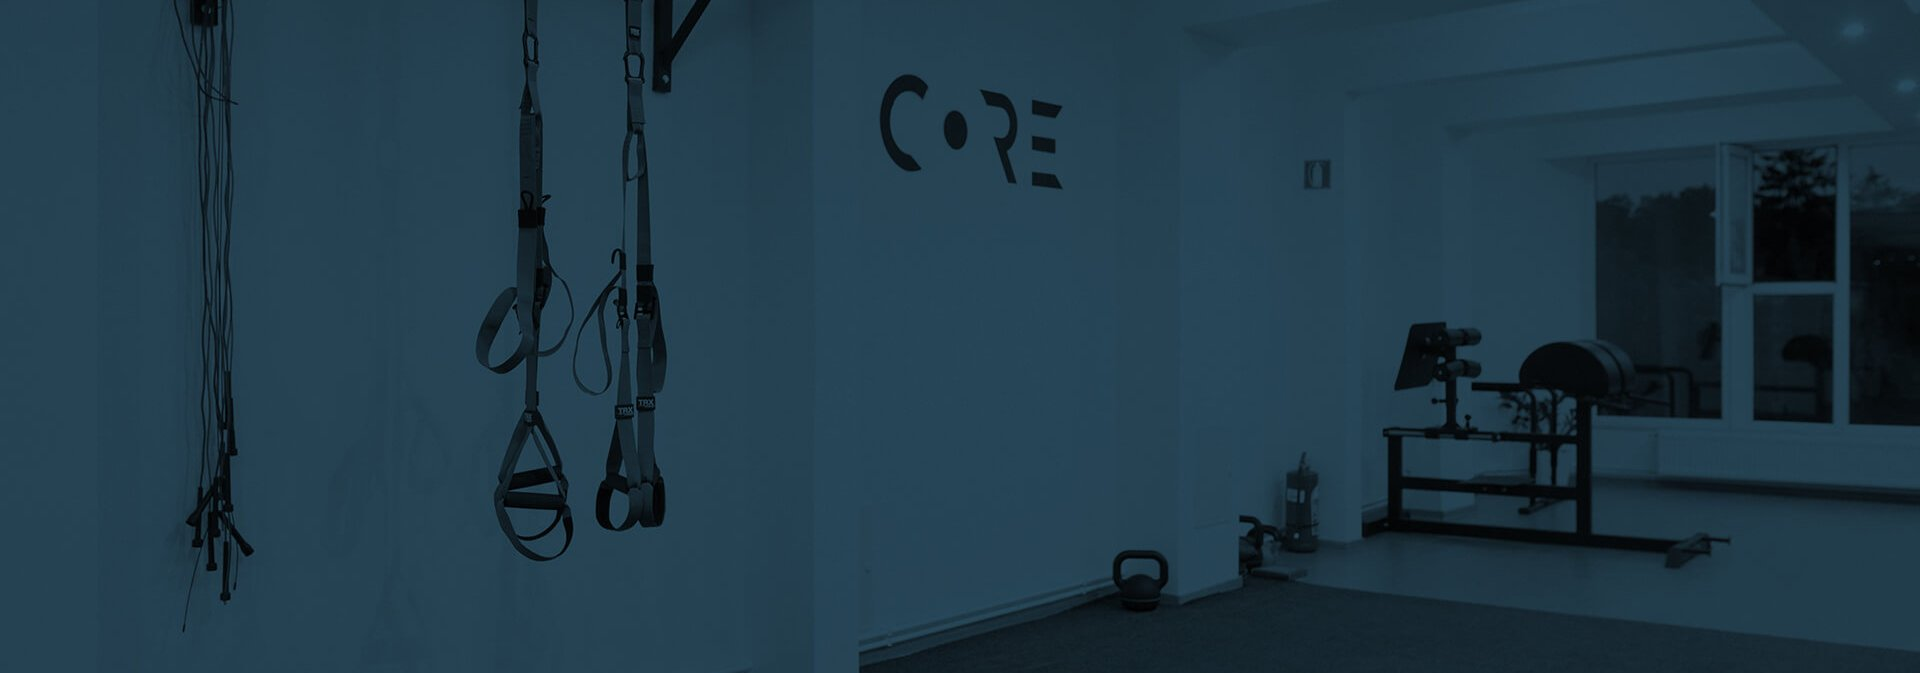 Core - Personal Training and Nutrition, Cluj-Napoca, Cluj